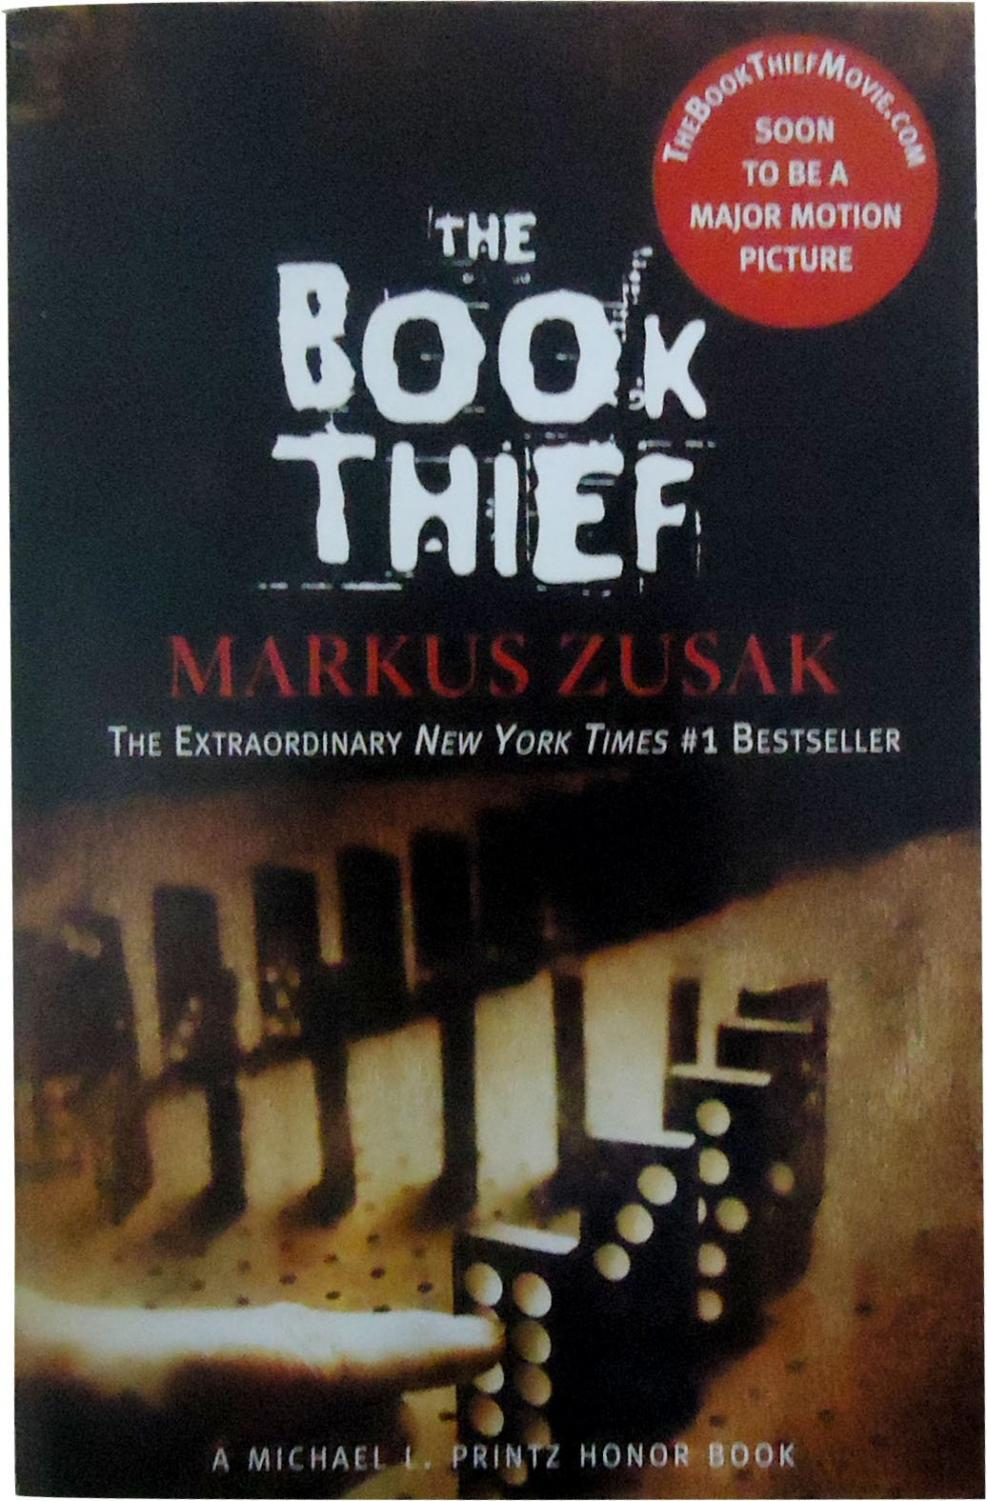 The front cover of the novel, The Book Thief.